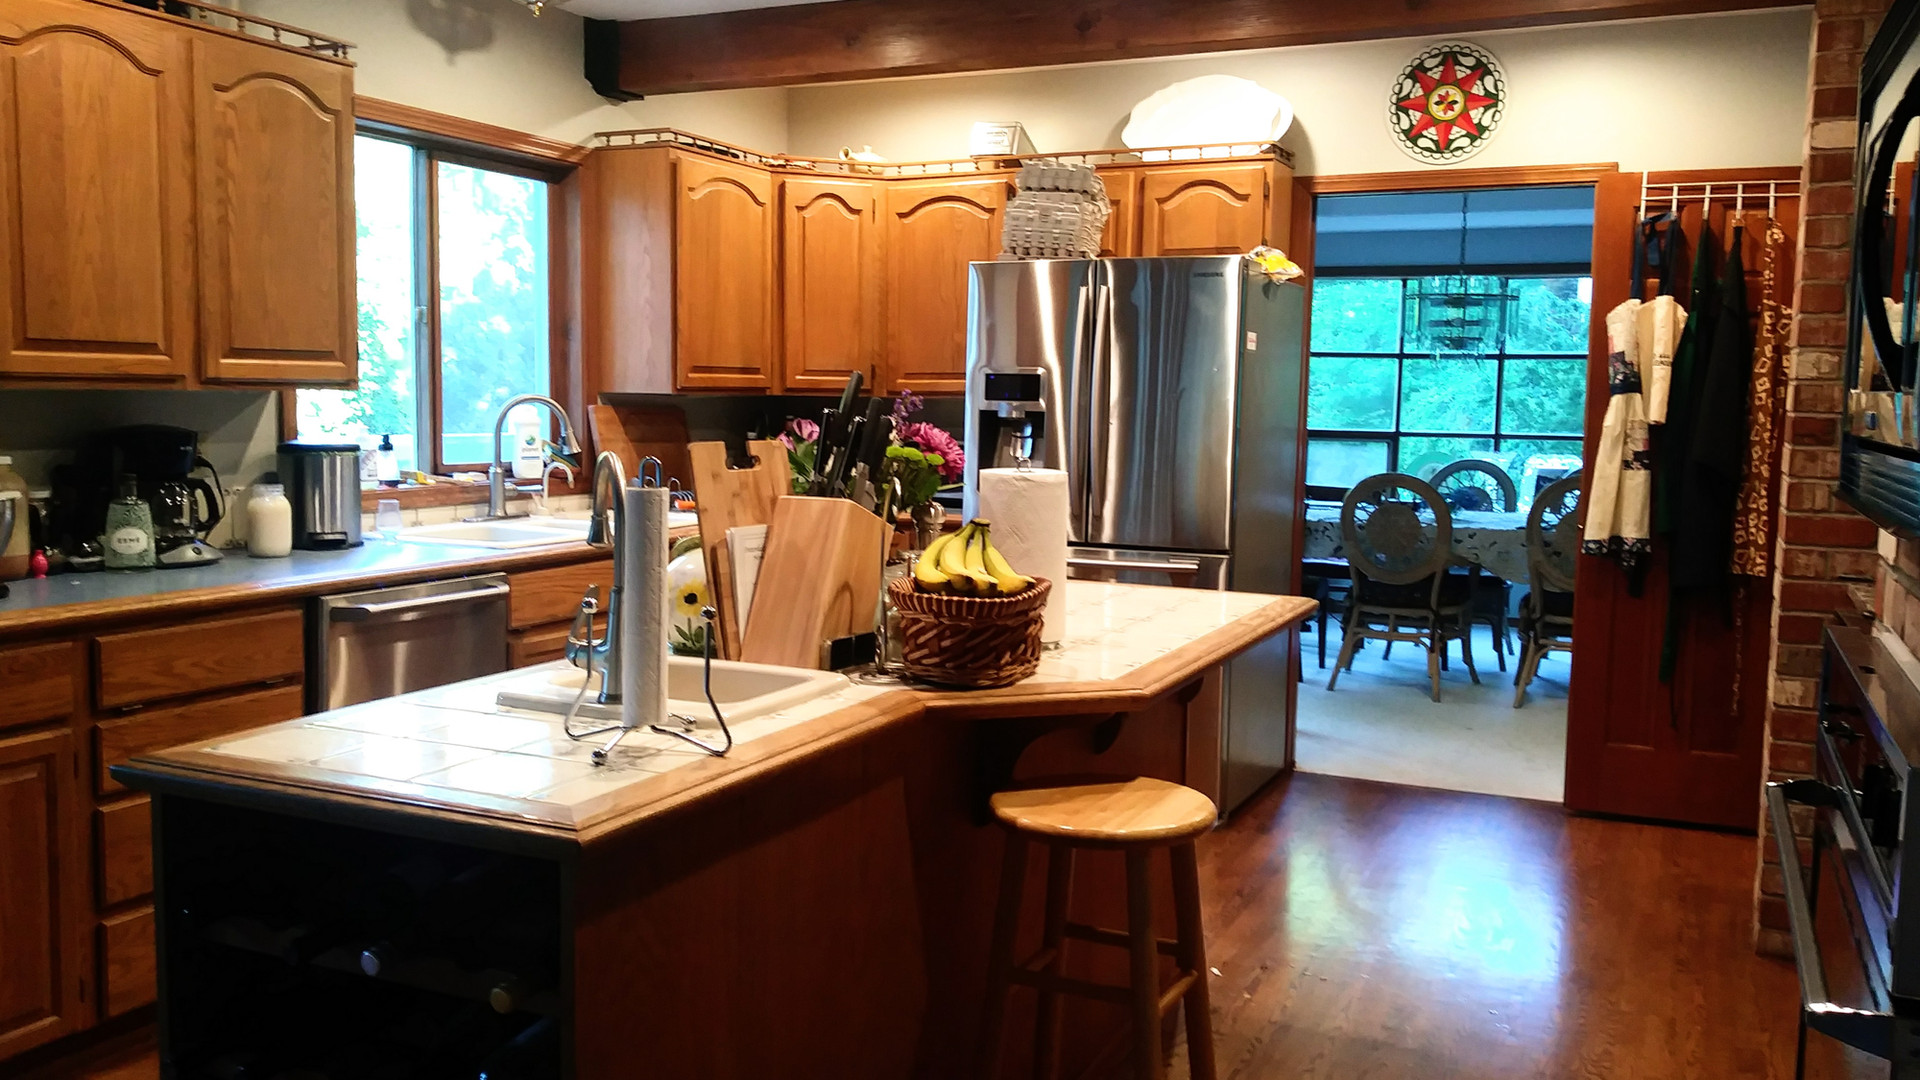 Kitchen to the formal dining room